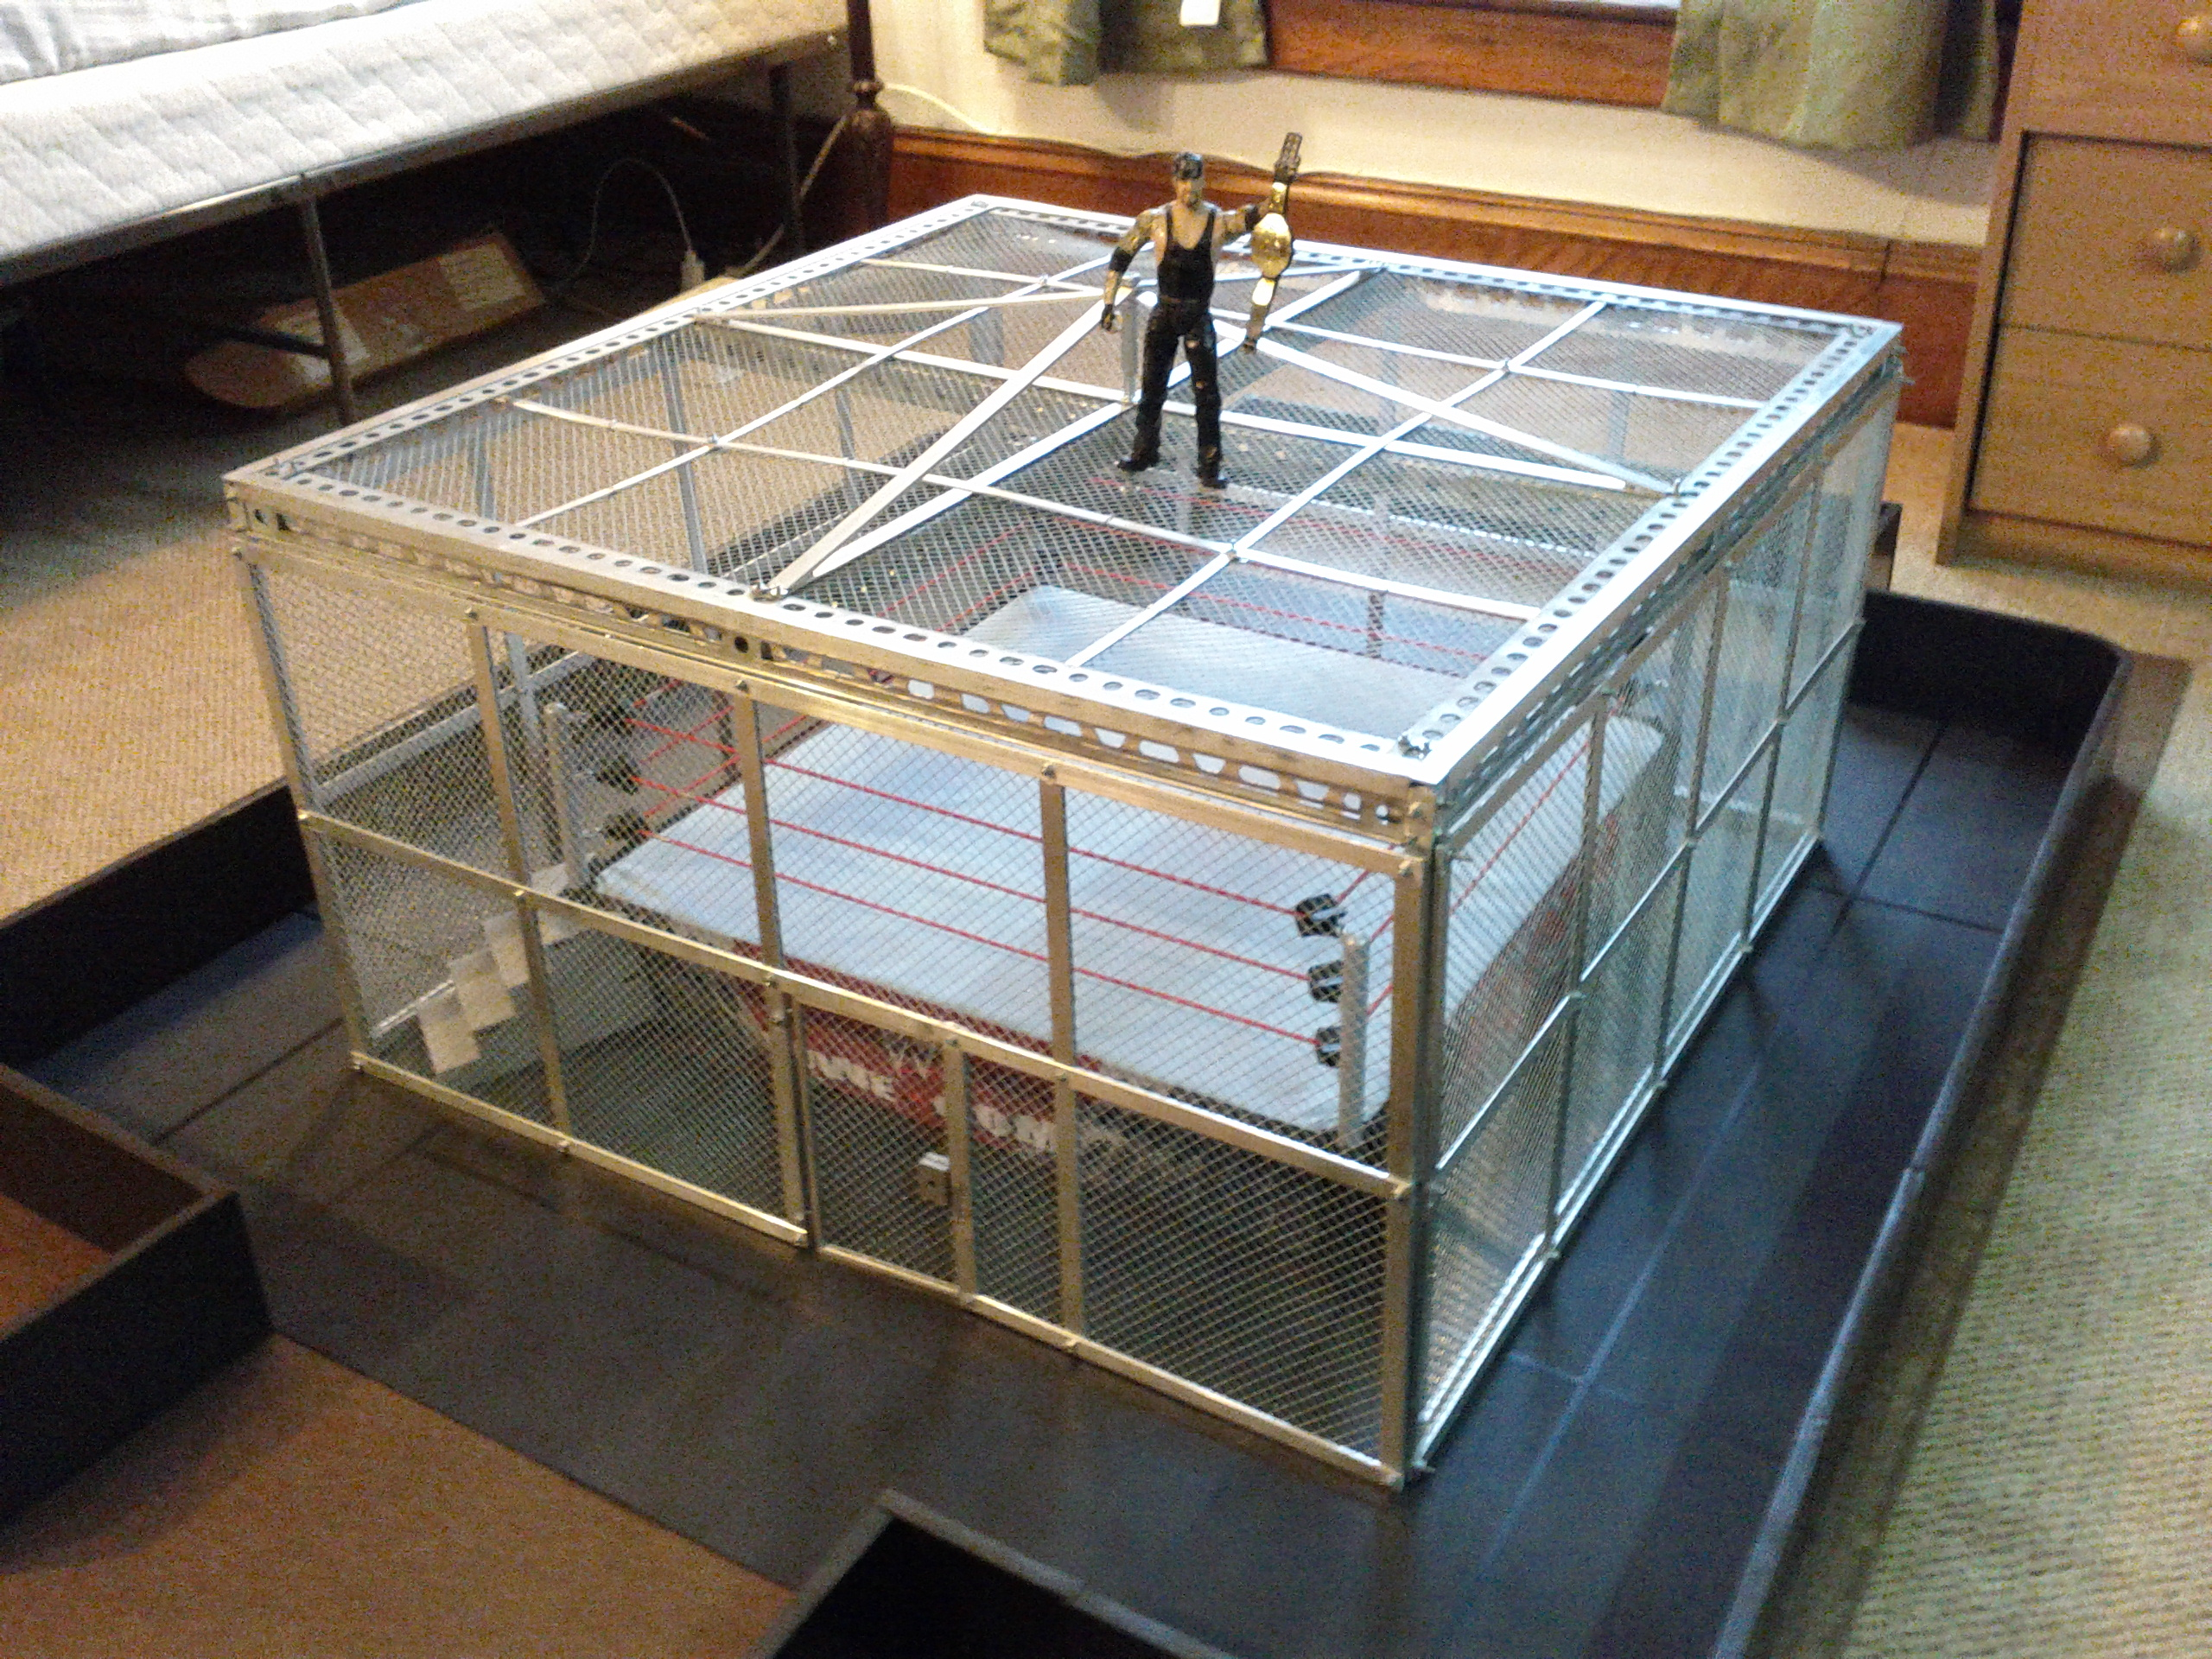 Quoti Set Out To Create The Best Custom Wrestling Ring Ever